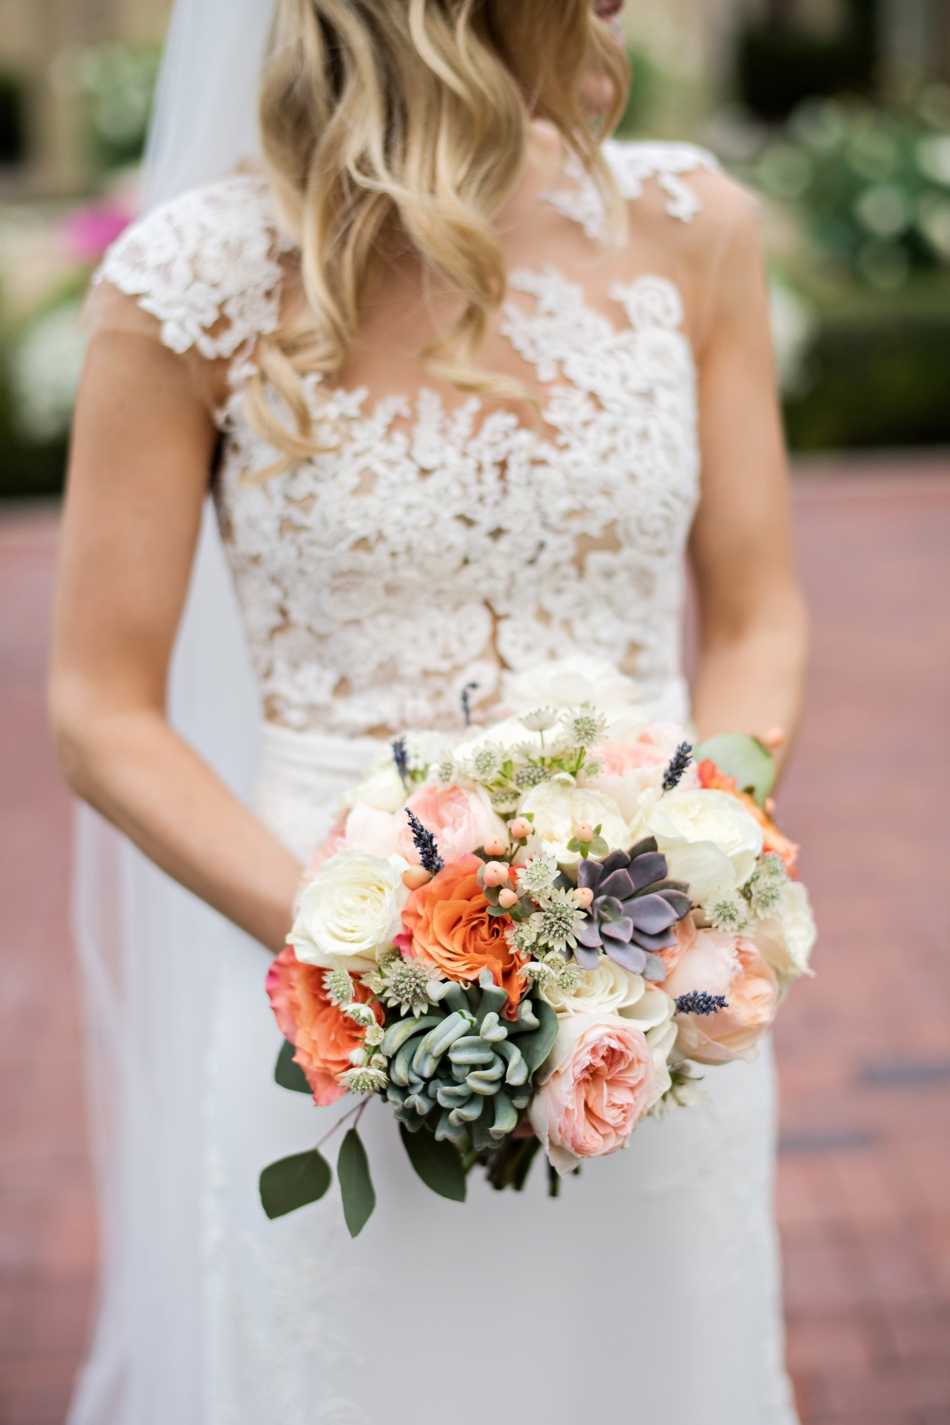 pronovias wedding gown and bouquet